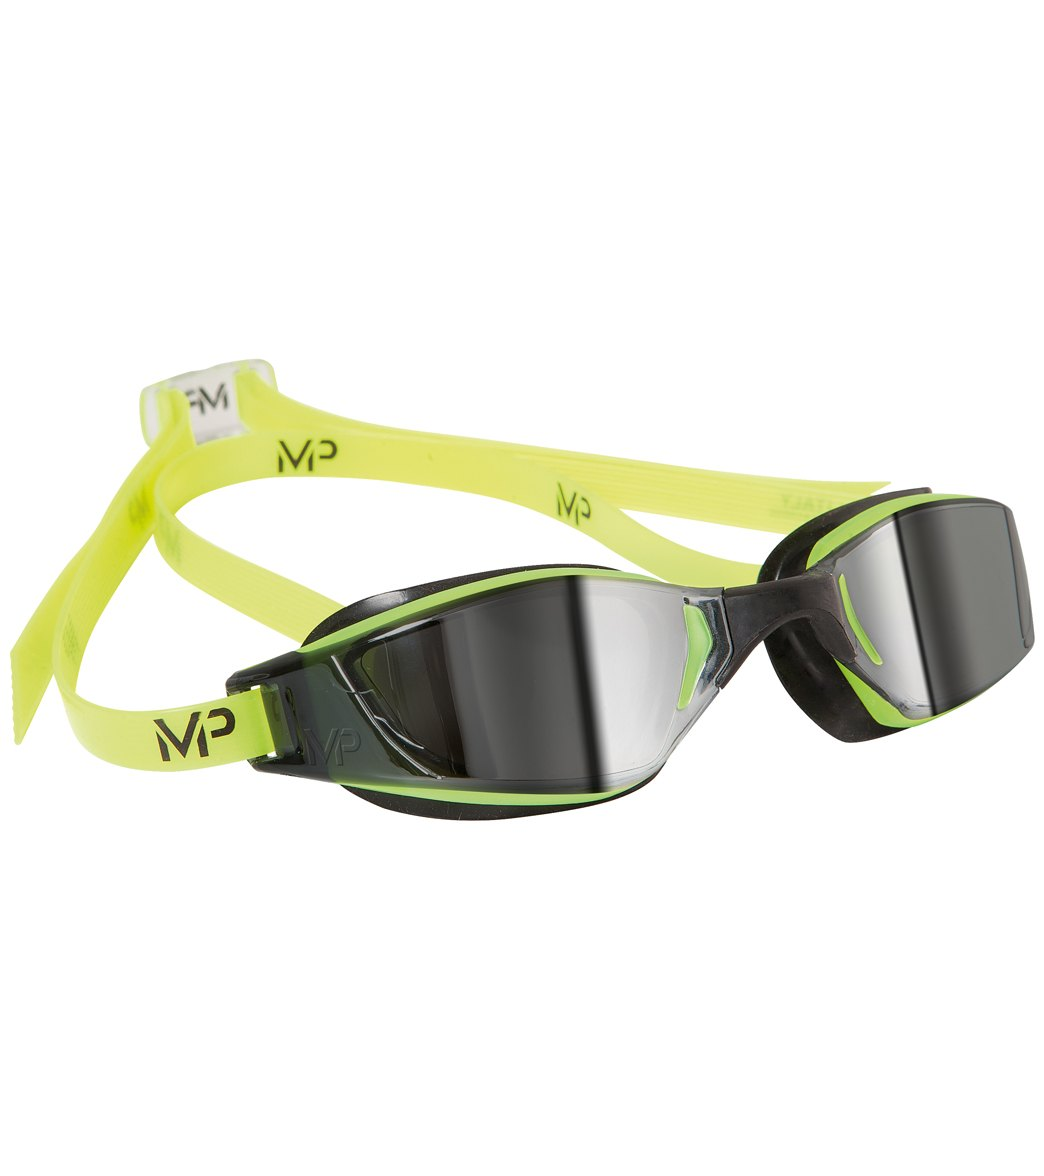 MP Michael Phelps Mirrored Xceed Goggle at SwimOutlet.com - Free Shipping 12055ea47